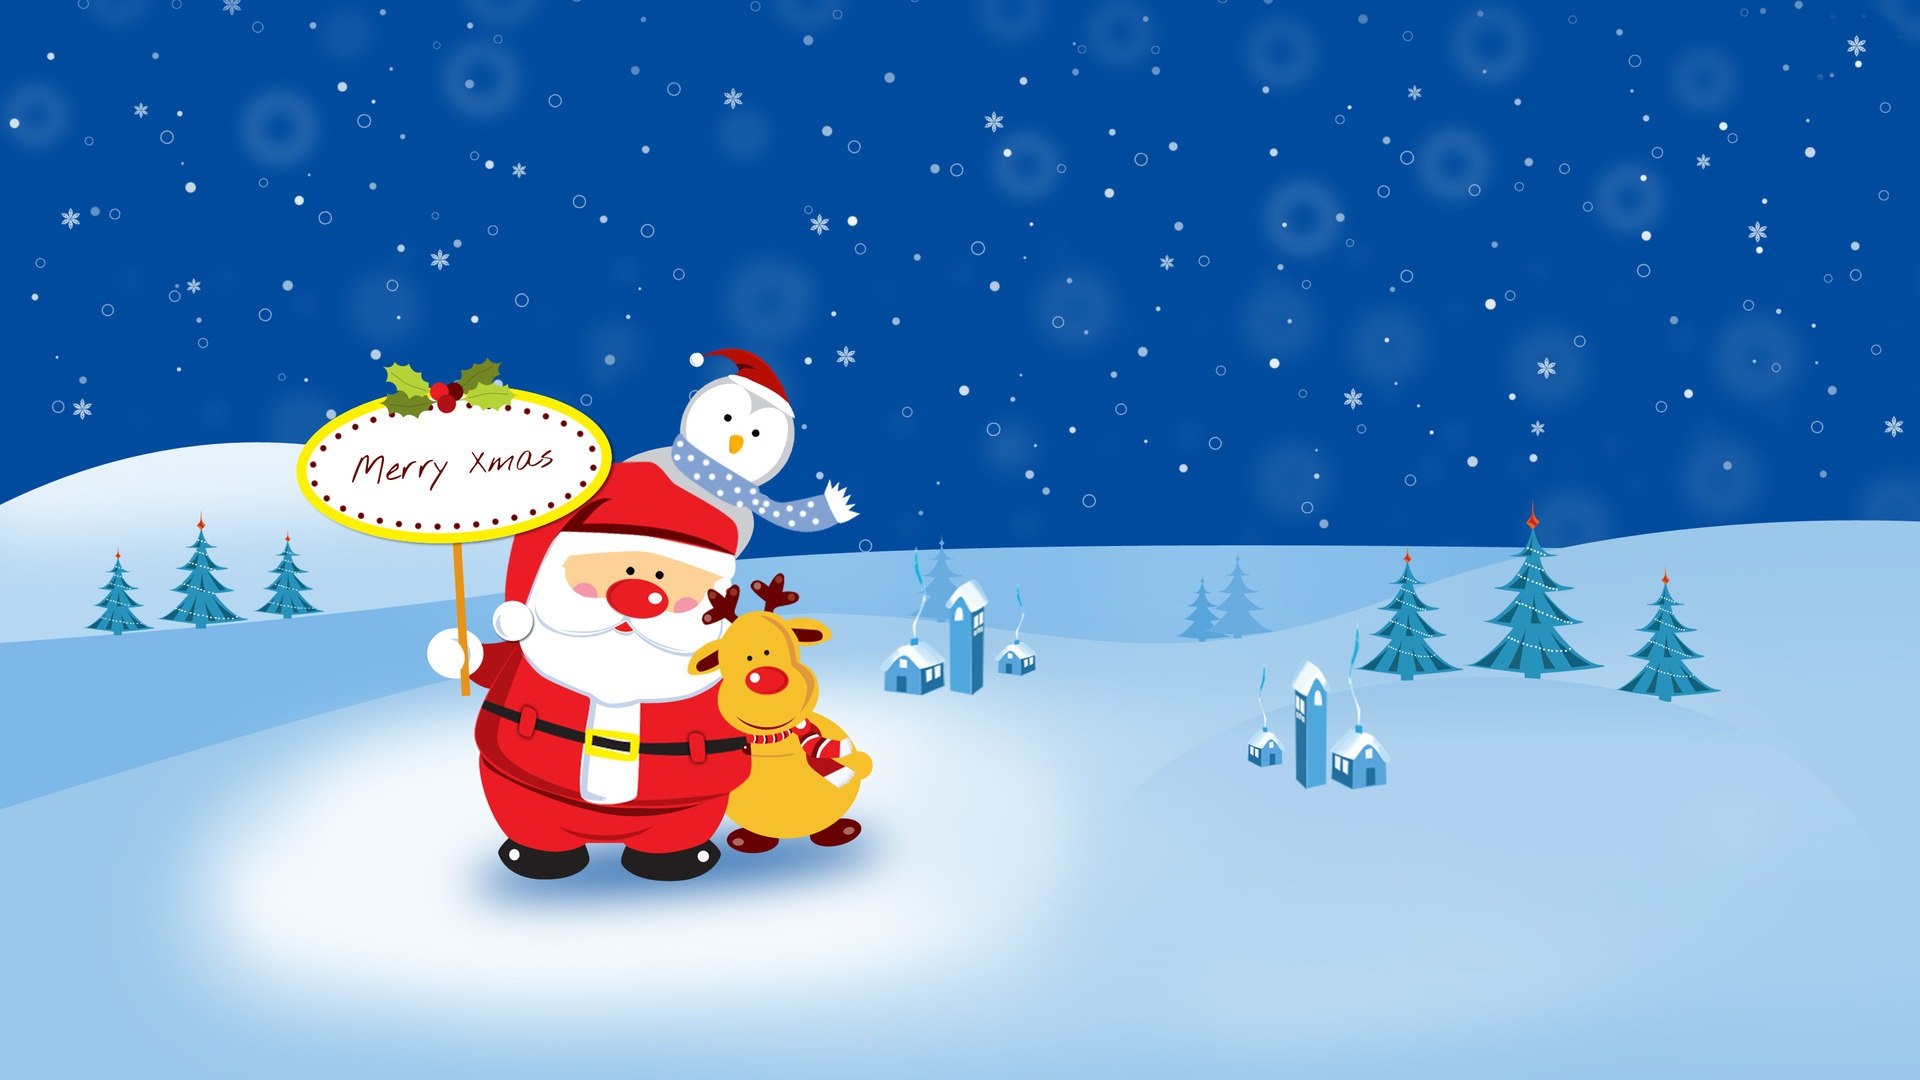 Hdwallpaperhd Wallpaper Happy Christmas Cartoon Pic Phone